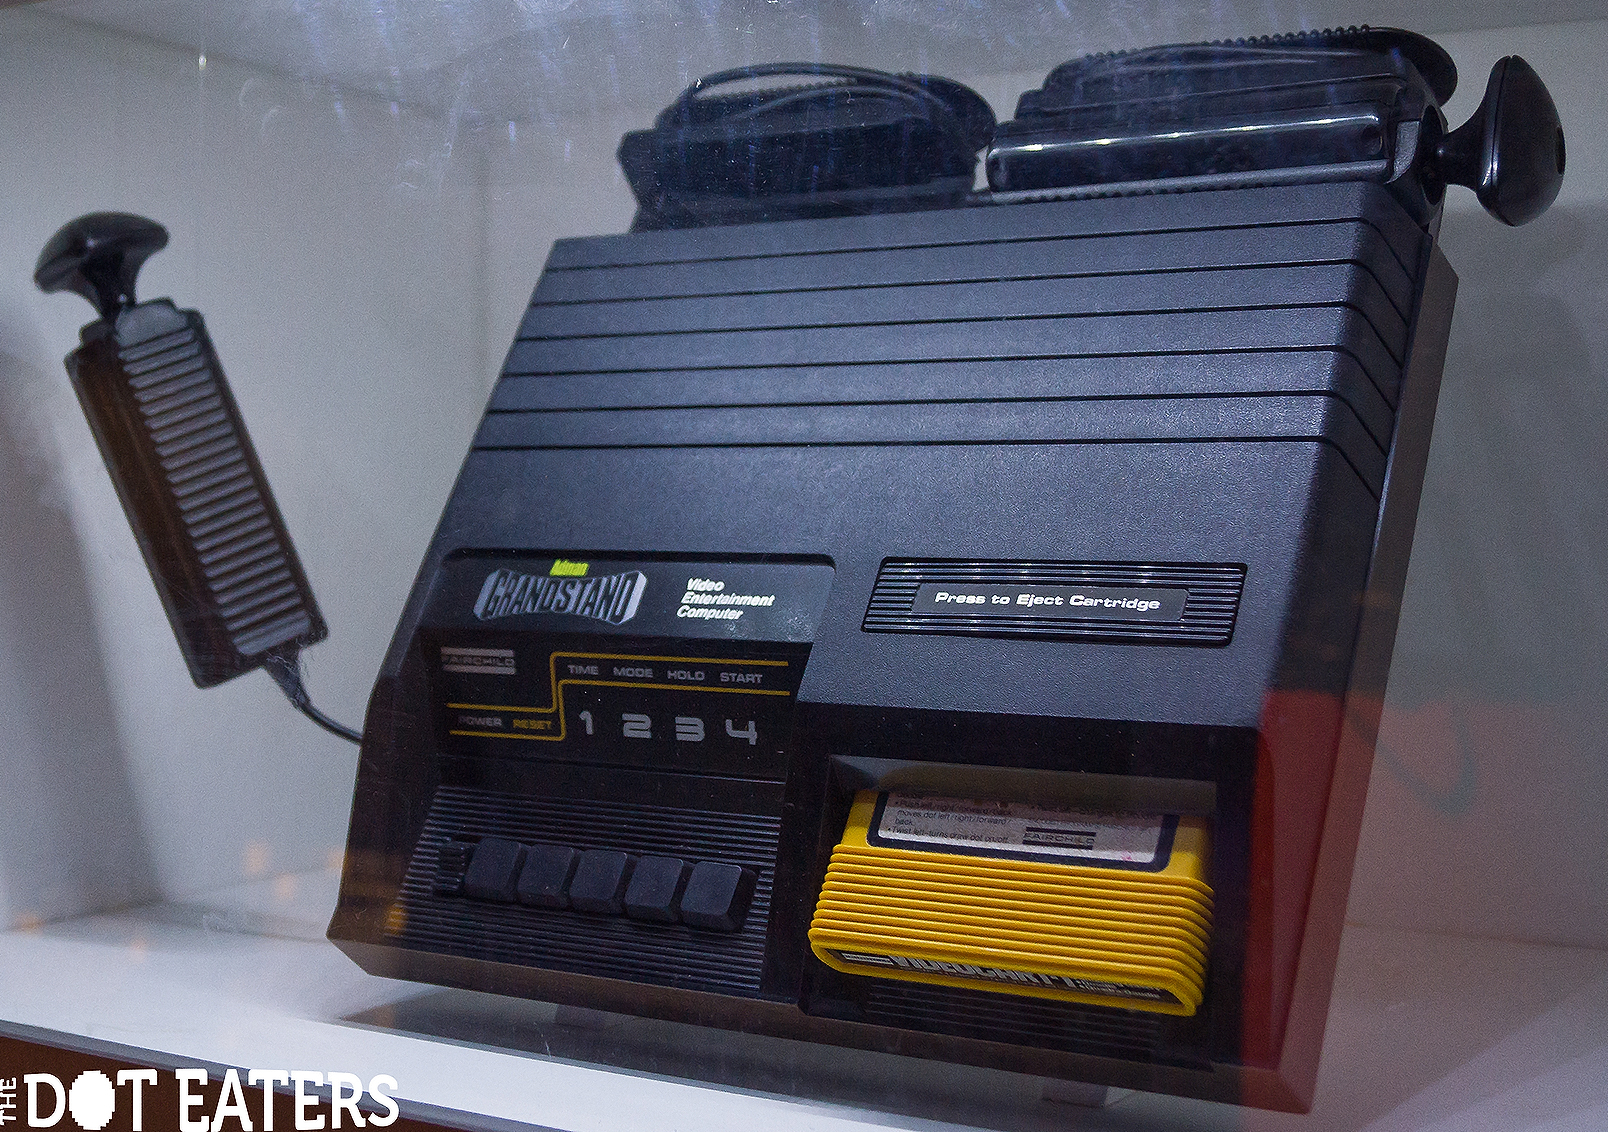 Adman Grandstand, UK version of the Channel F, a home video game console by Fairchild 1976